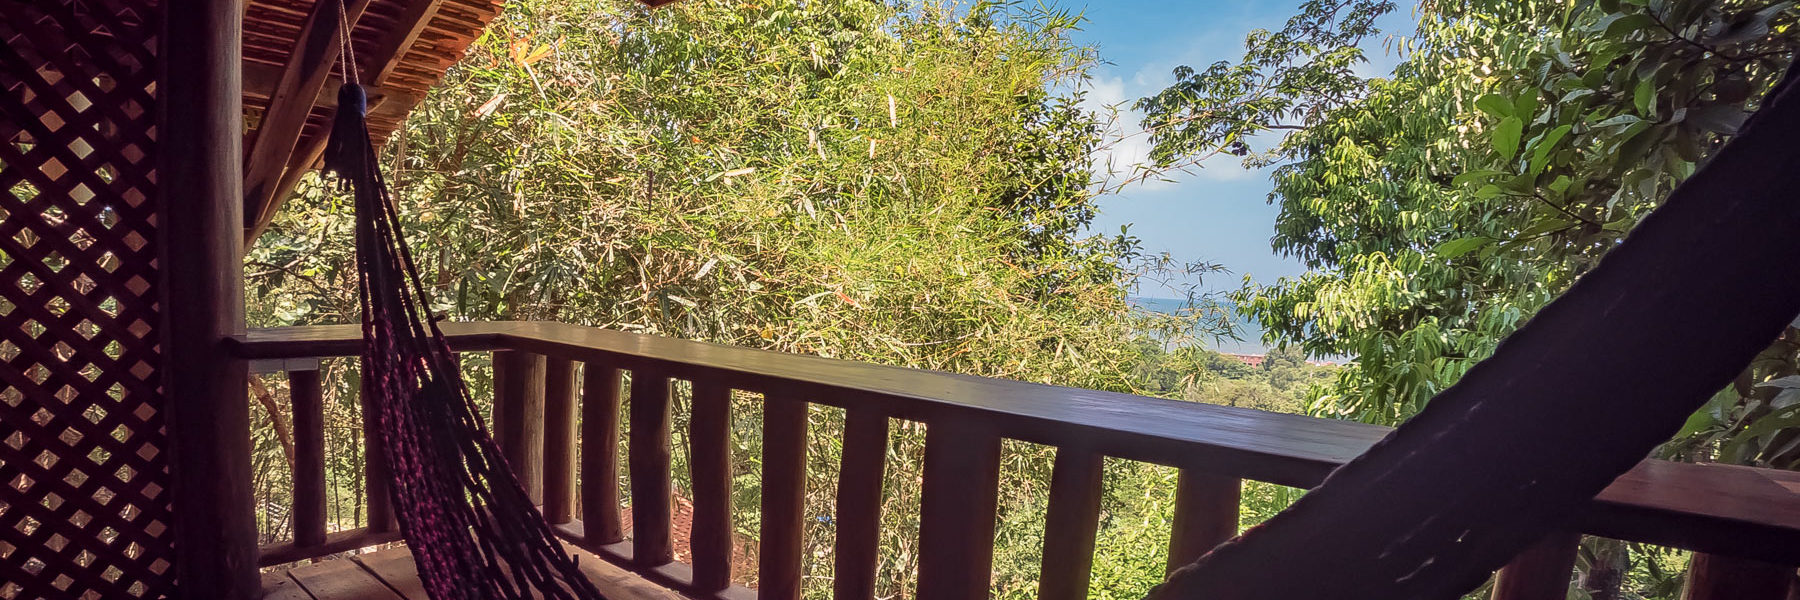 Bungalow Suite Deluxe, private balcony made with natural wood and view to the Gulf of Thailand - Pacific Ocean in Veranda Natural Resort, Kep - Cambodia.